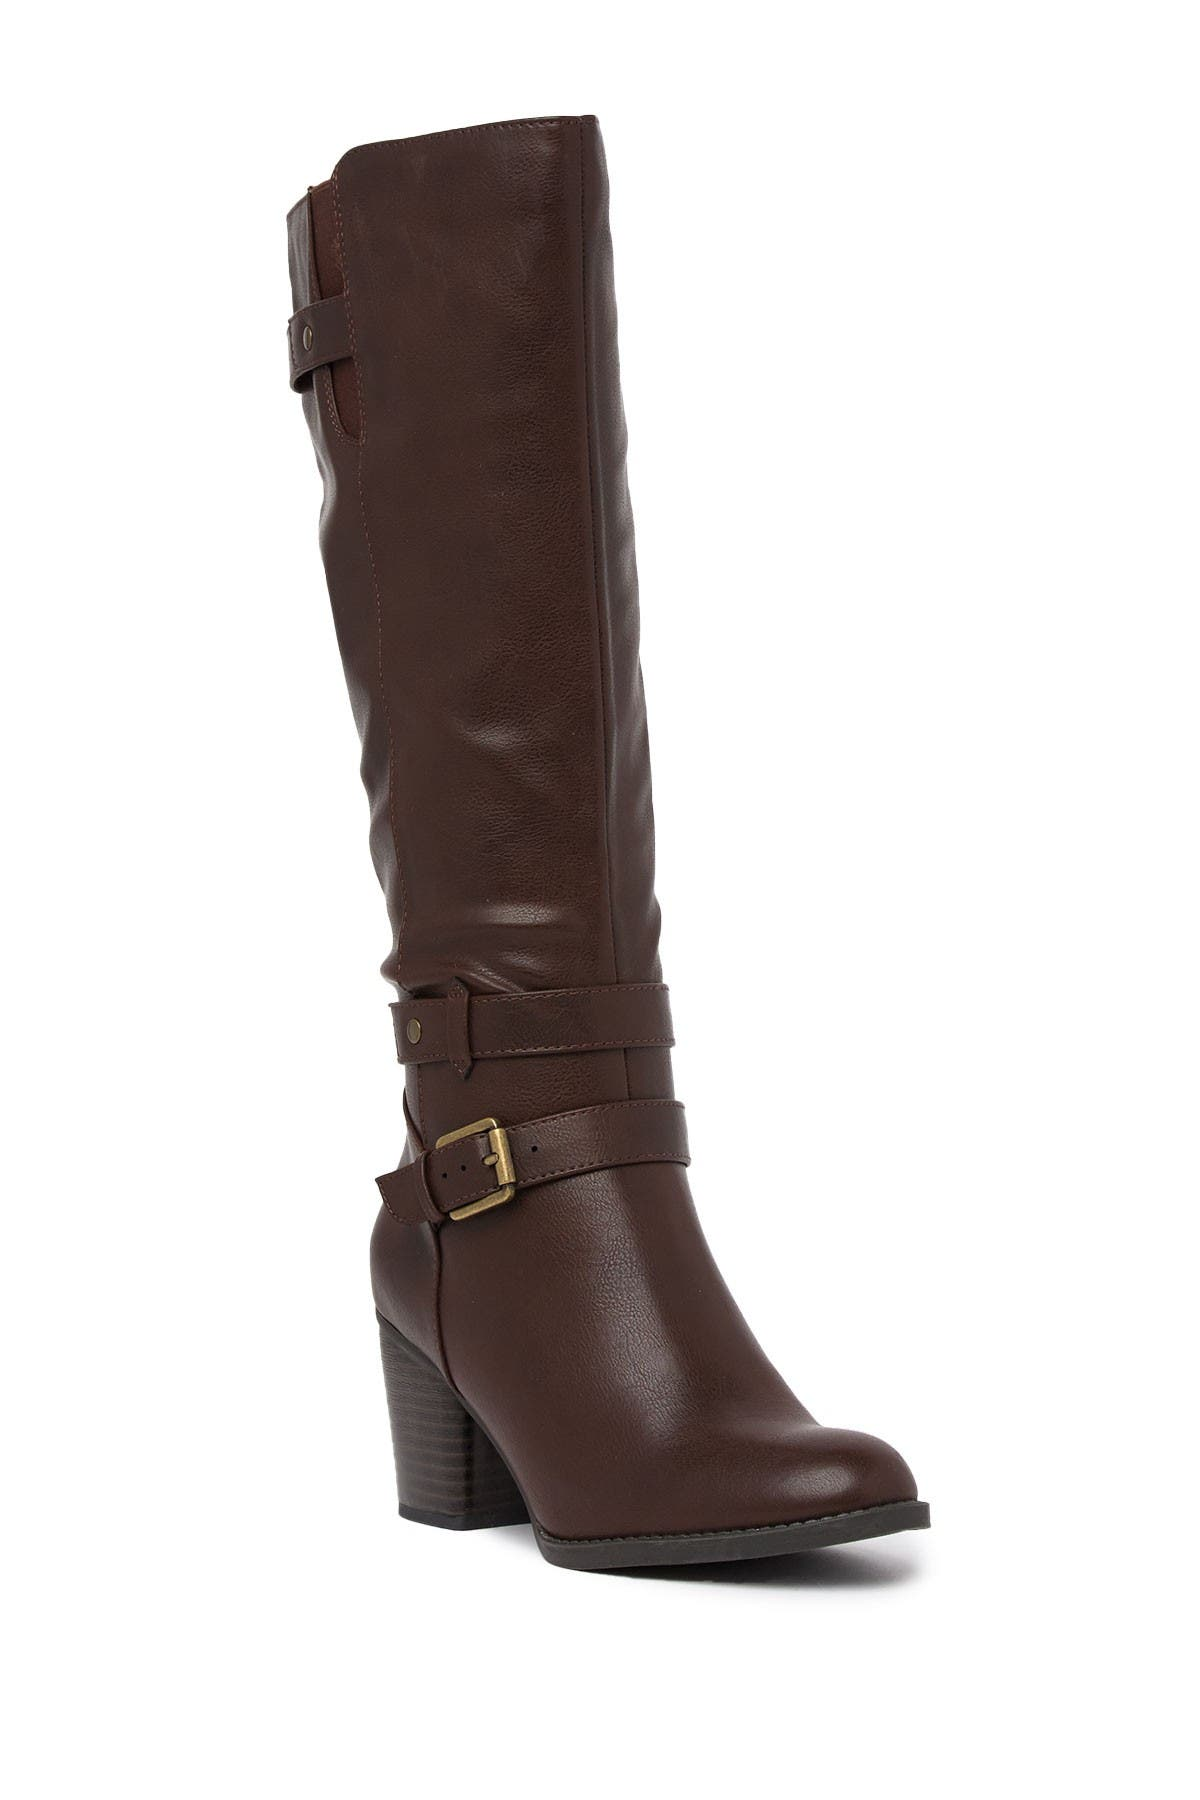 Image of SOUL Naturalizer Taliah Buckle Tall Boot